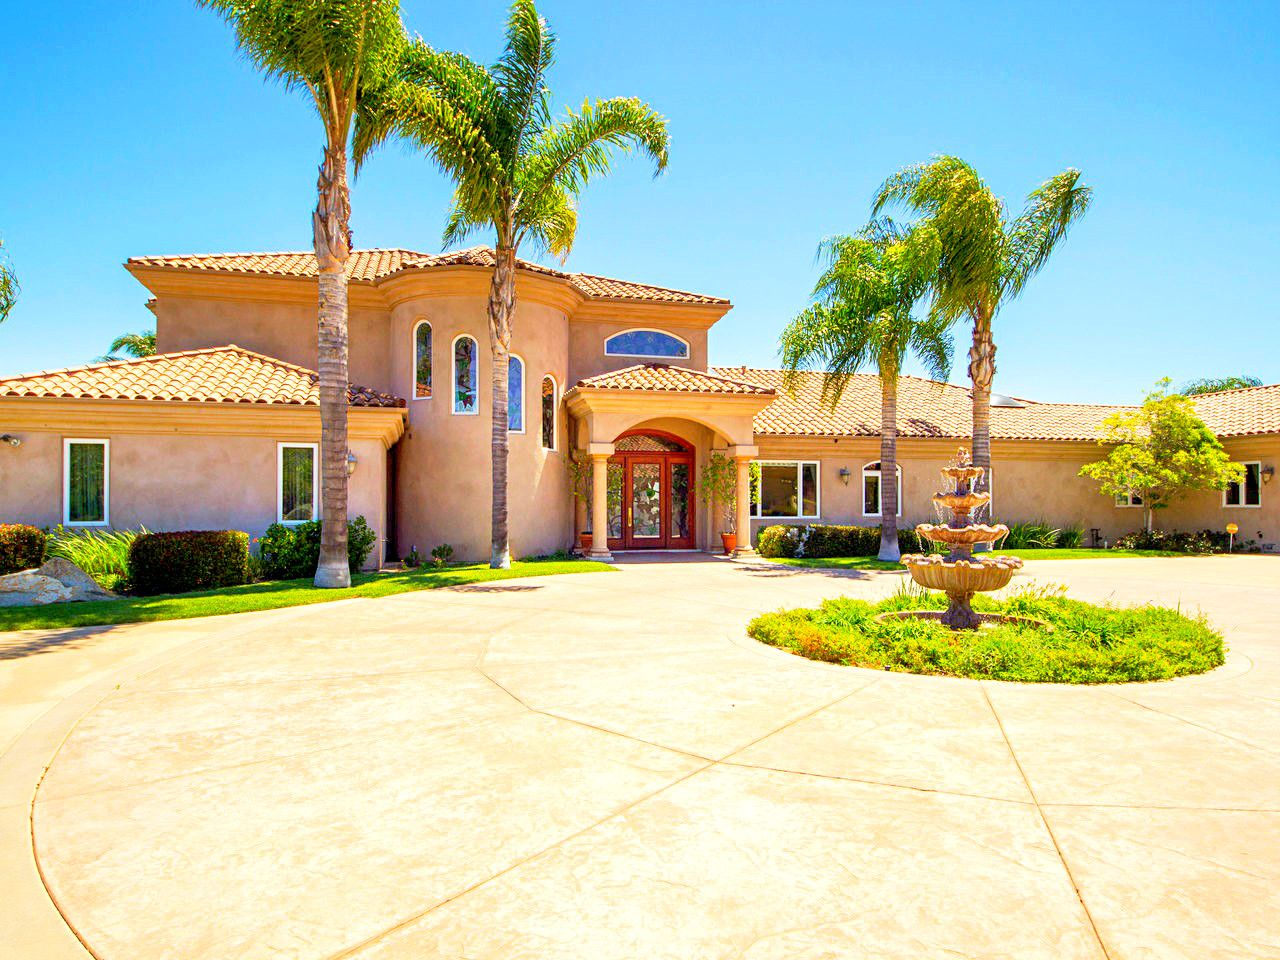 A fabulous estate with great layout and interior designs